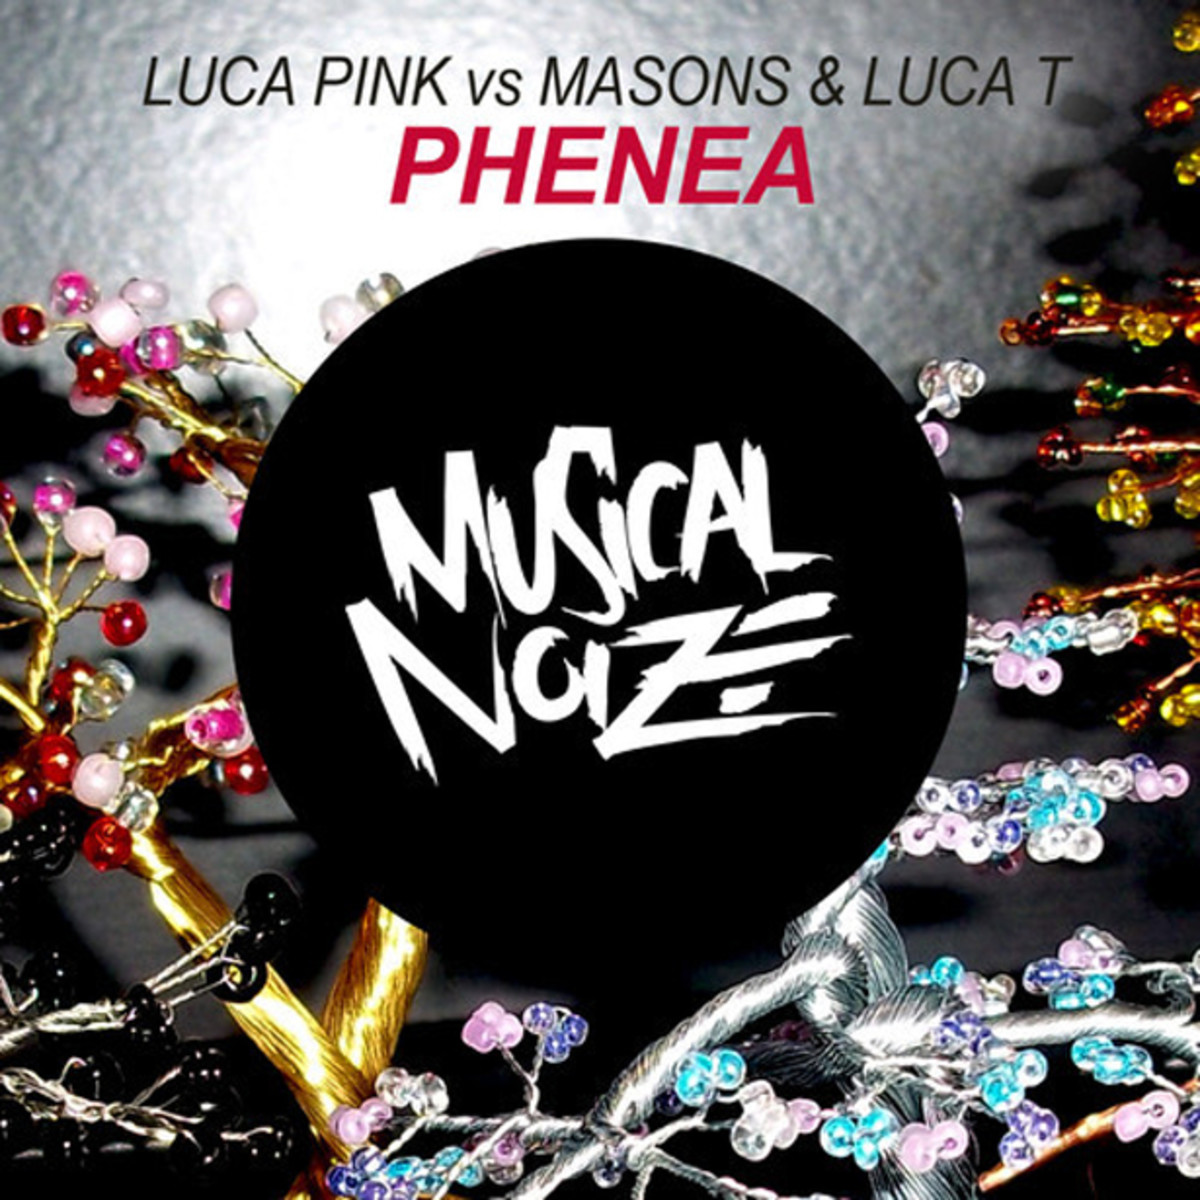 Label Spotlight: New Electronic Music From Serif Chase And Luca Pink VS Masons & Luca T Via Musical Noize